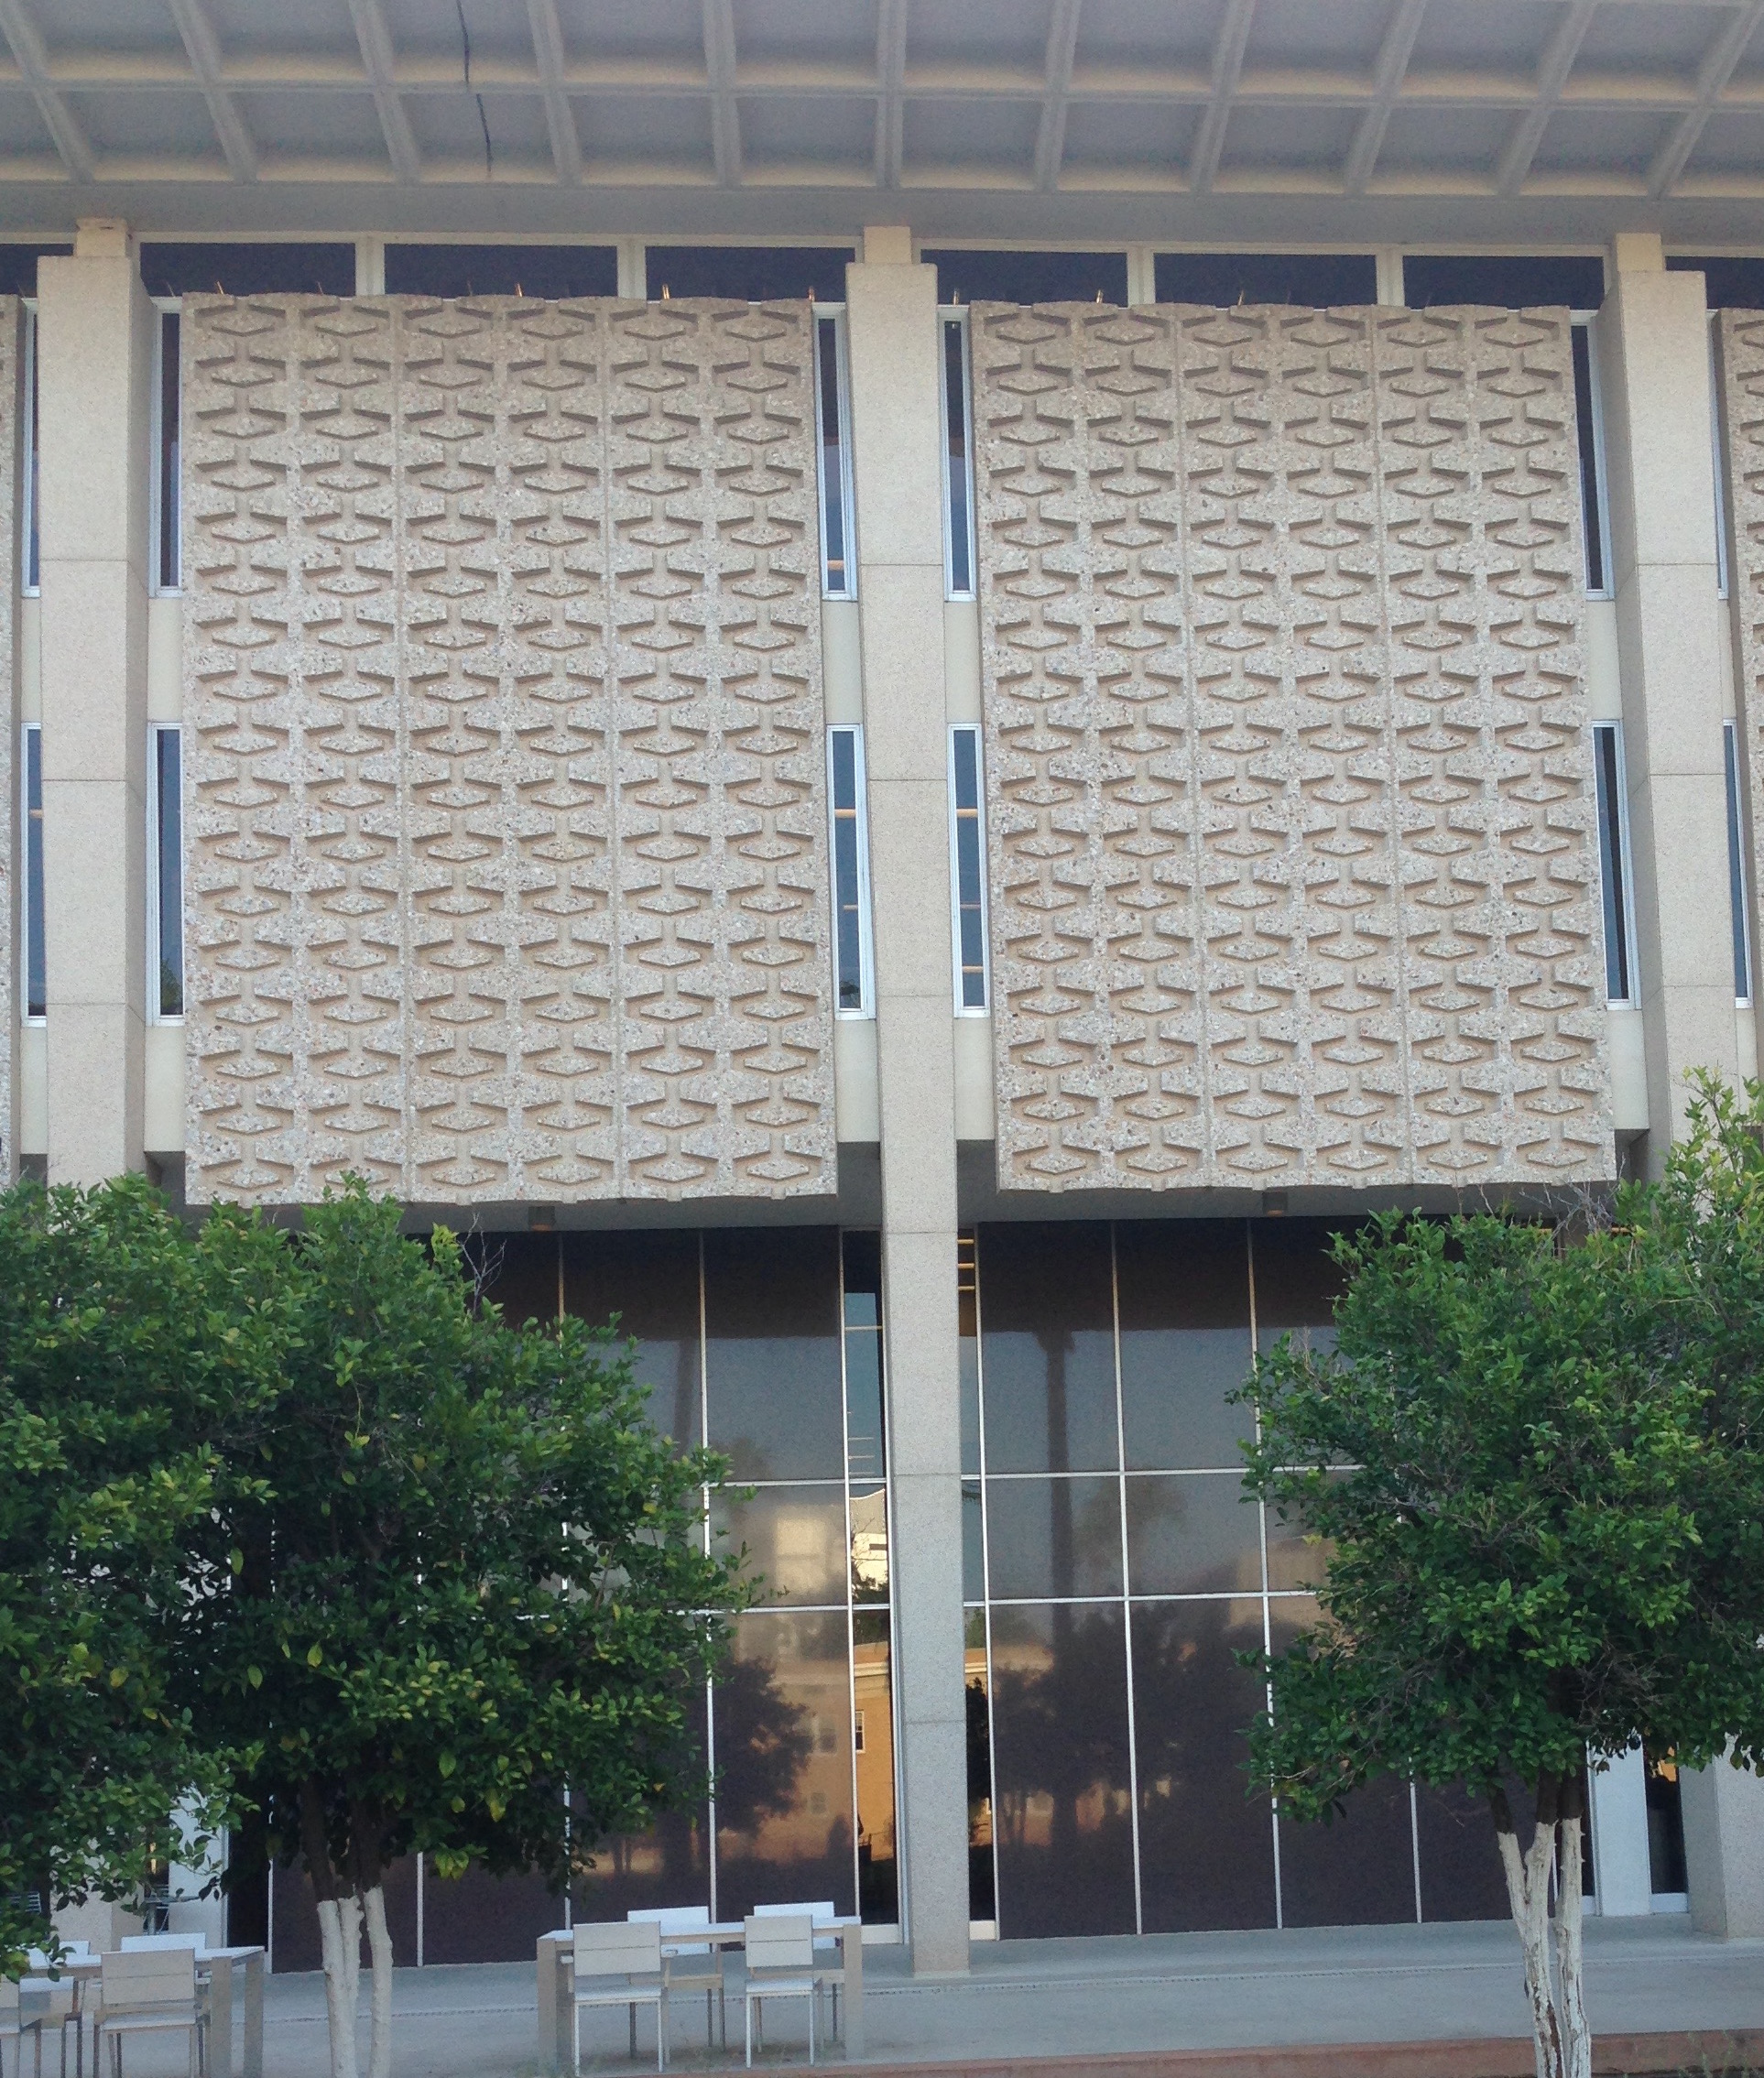 The old ASU library with its midcentury modern exterior concrete patterning.